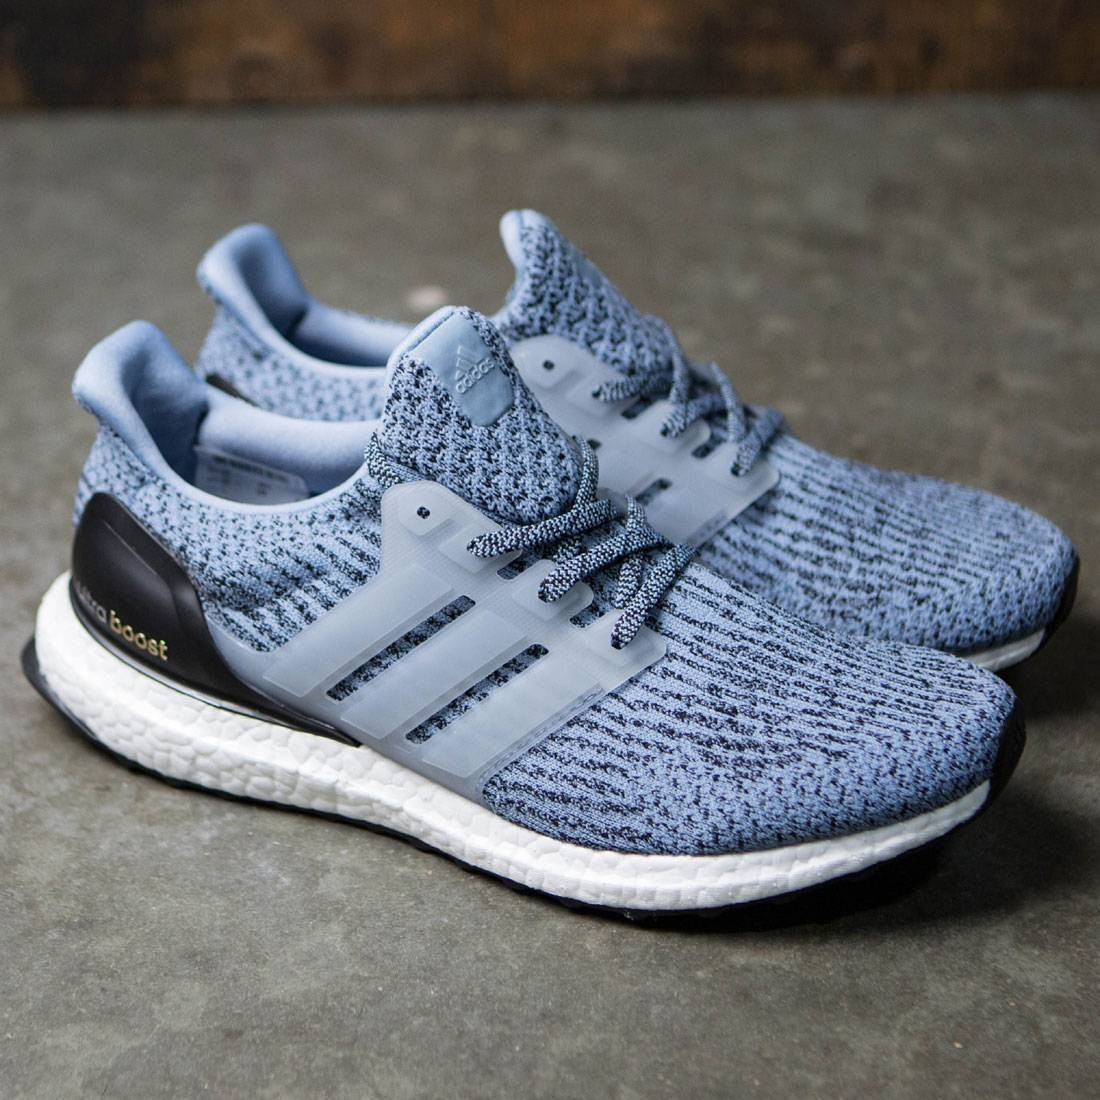 2a0bb4863f44d Adidas Ultra Boost Tactile Blue Adidas Iniki Runner South Africa ...